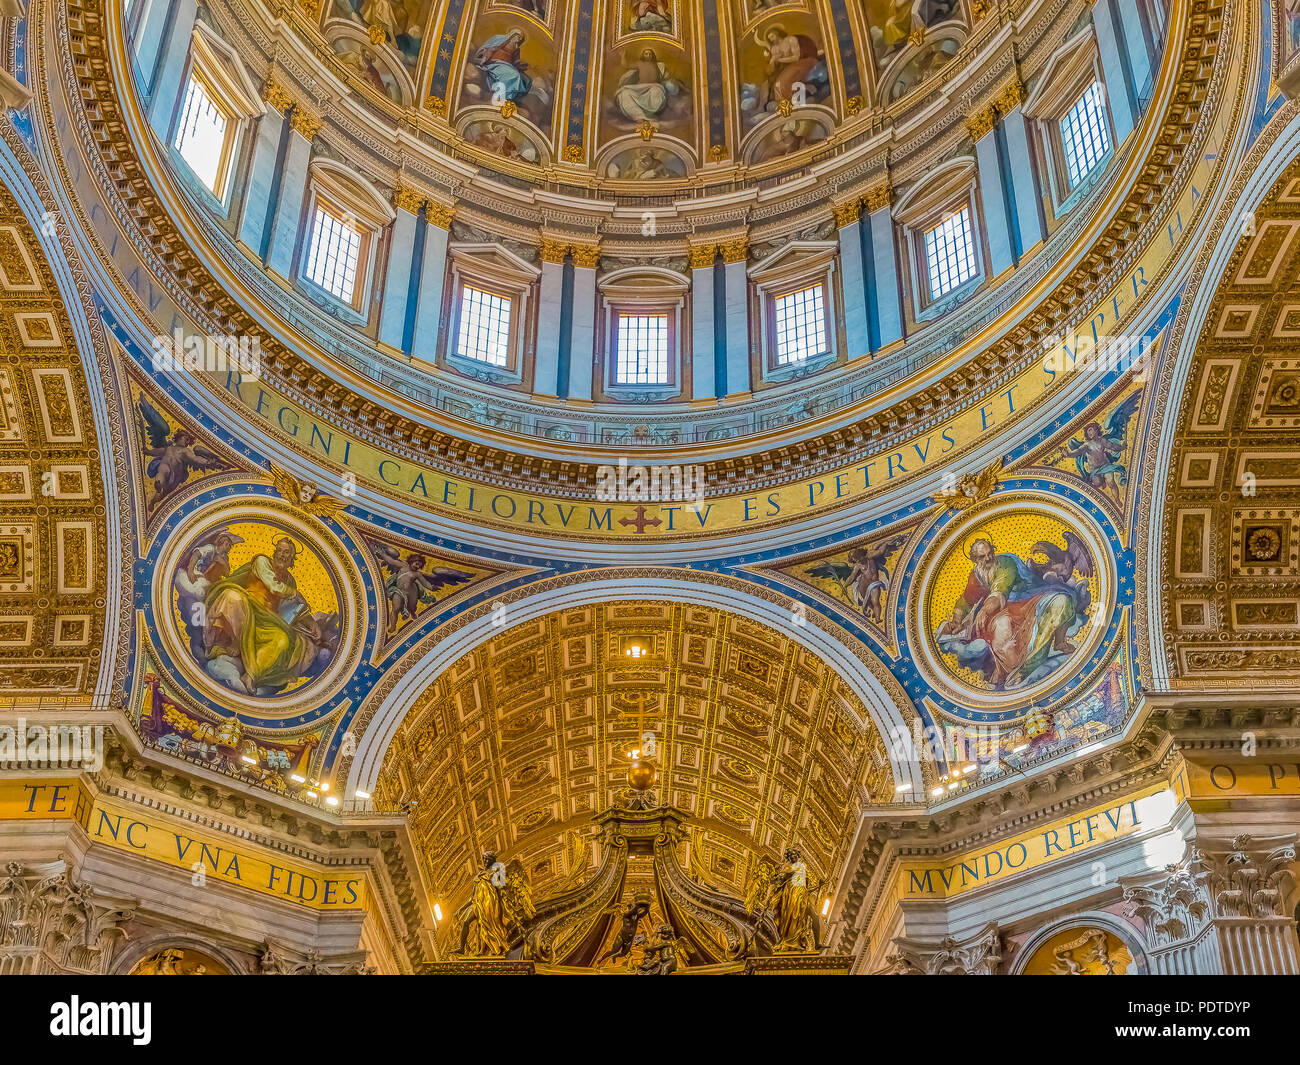 Vatican city, Vatican - October 12, 2016: Ornate interior of the Saint Peter's Basilica in Vatican City - Stock Image